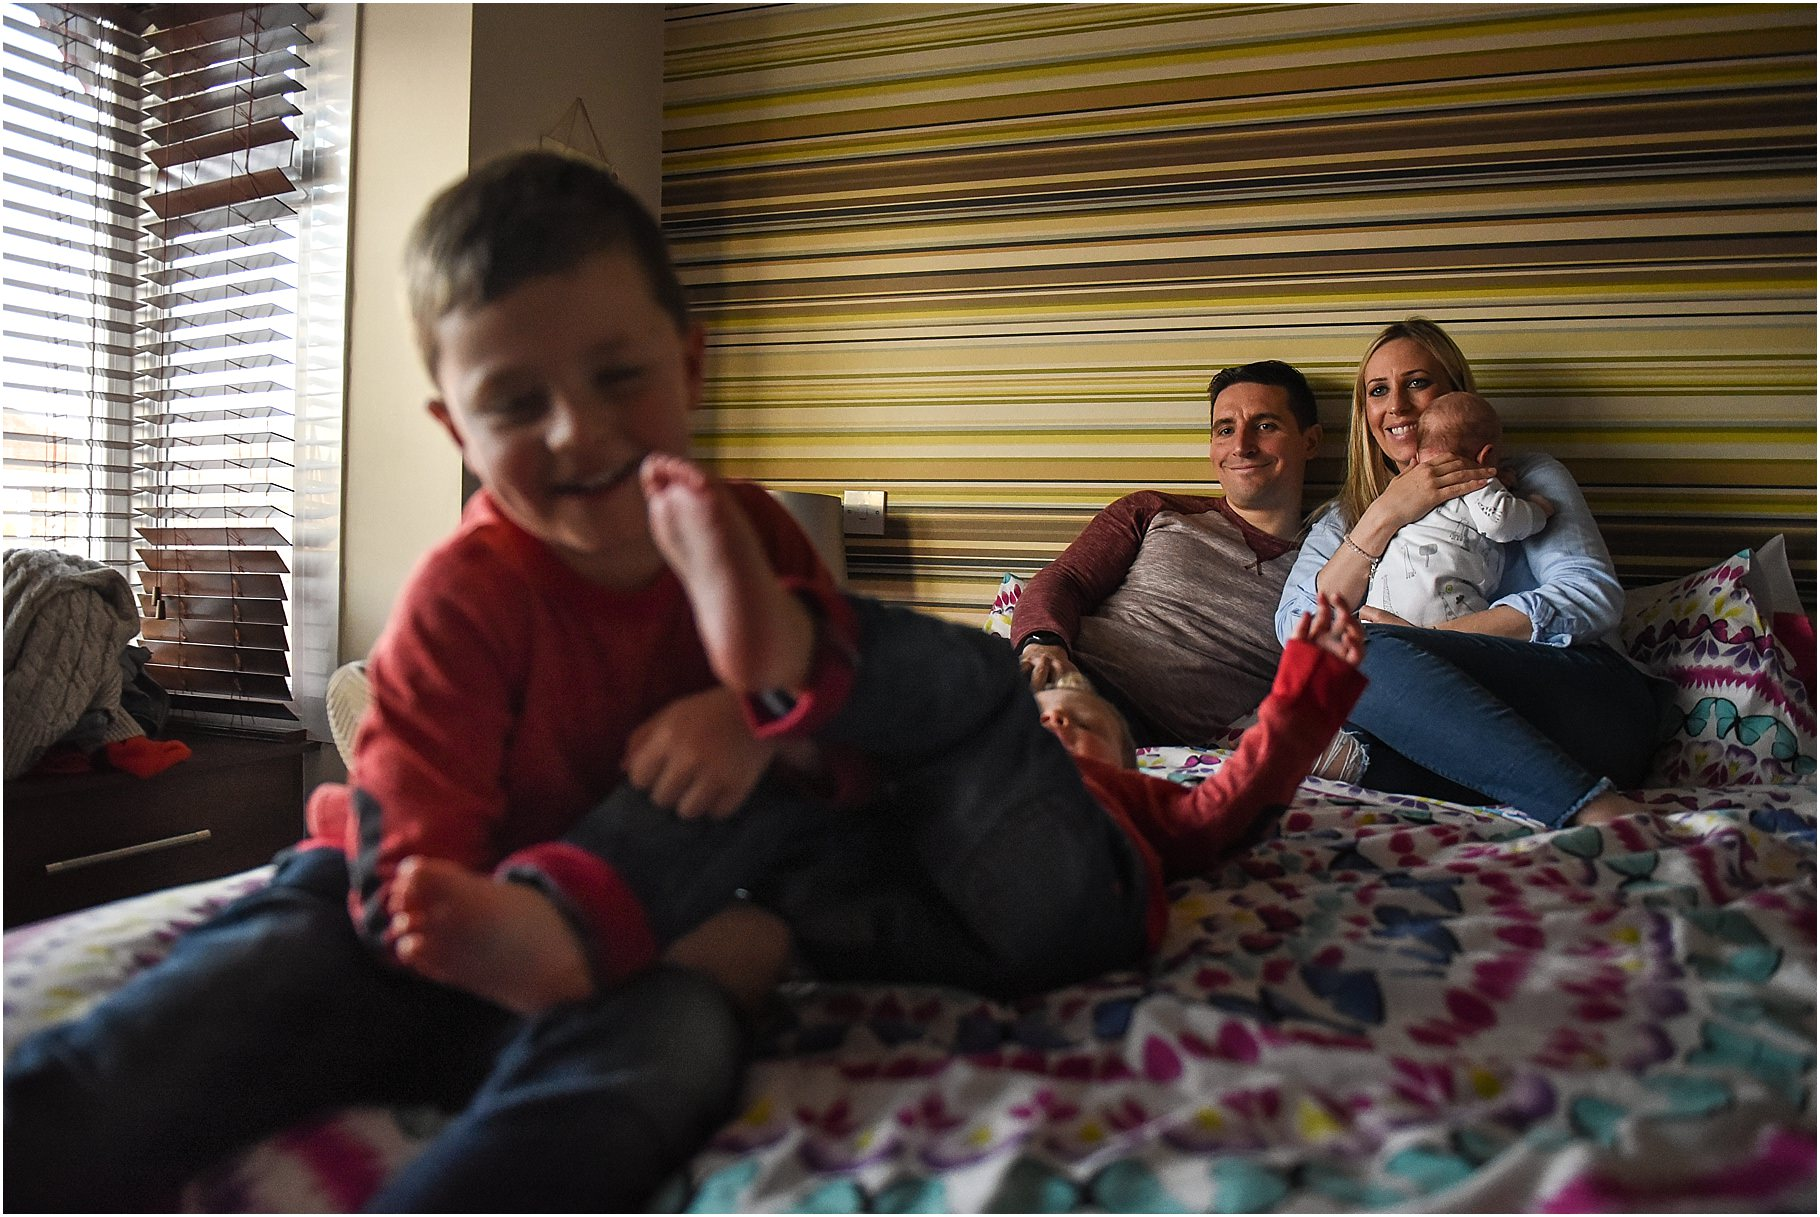 lancashire-family-photography-steve-april-jack-ollie-theo-87.jpg